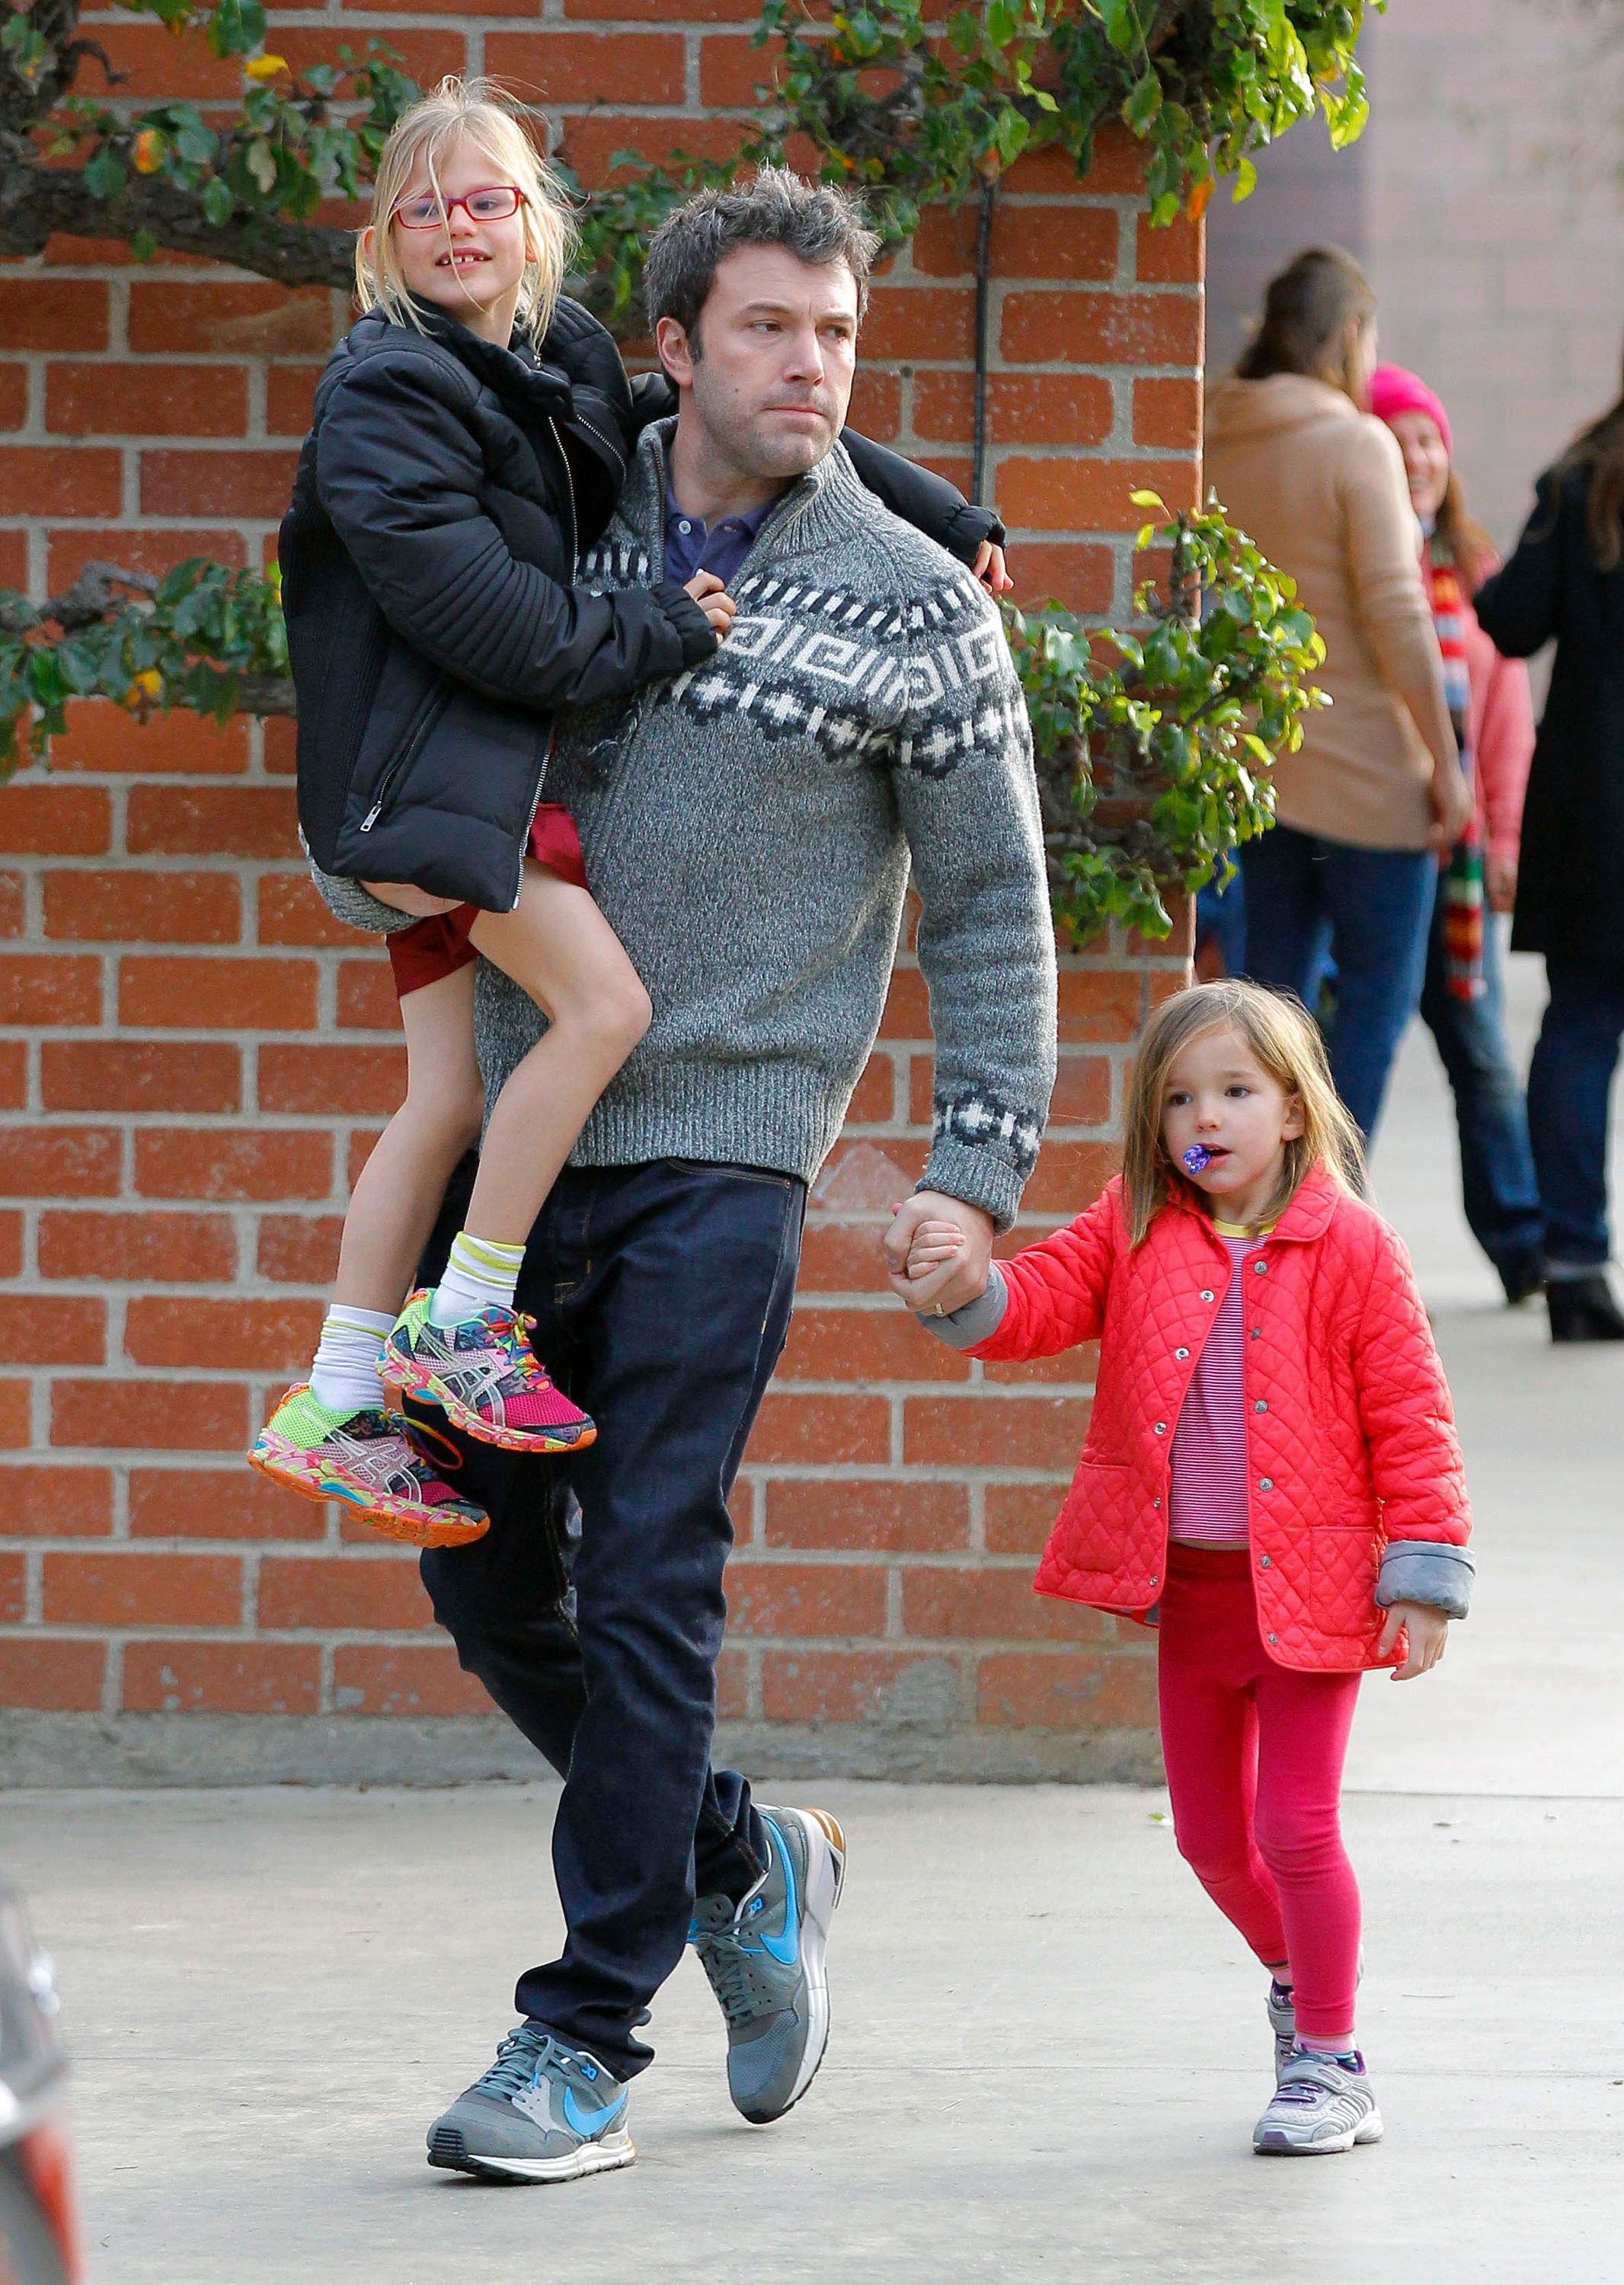 Ben Affleck and his daughters, Violet and Seraphina Affleck, are seen leaving the park on December 08, 2013 in Los Angeles, California. | Source: Getty Images